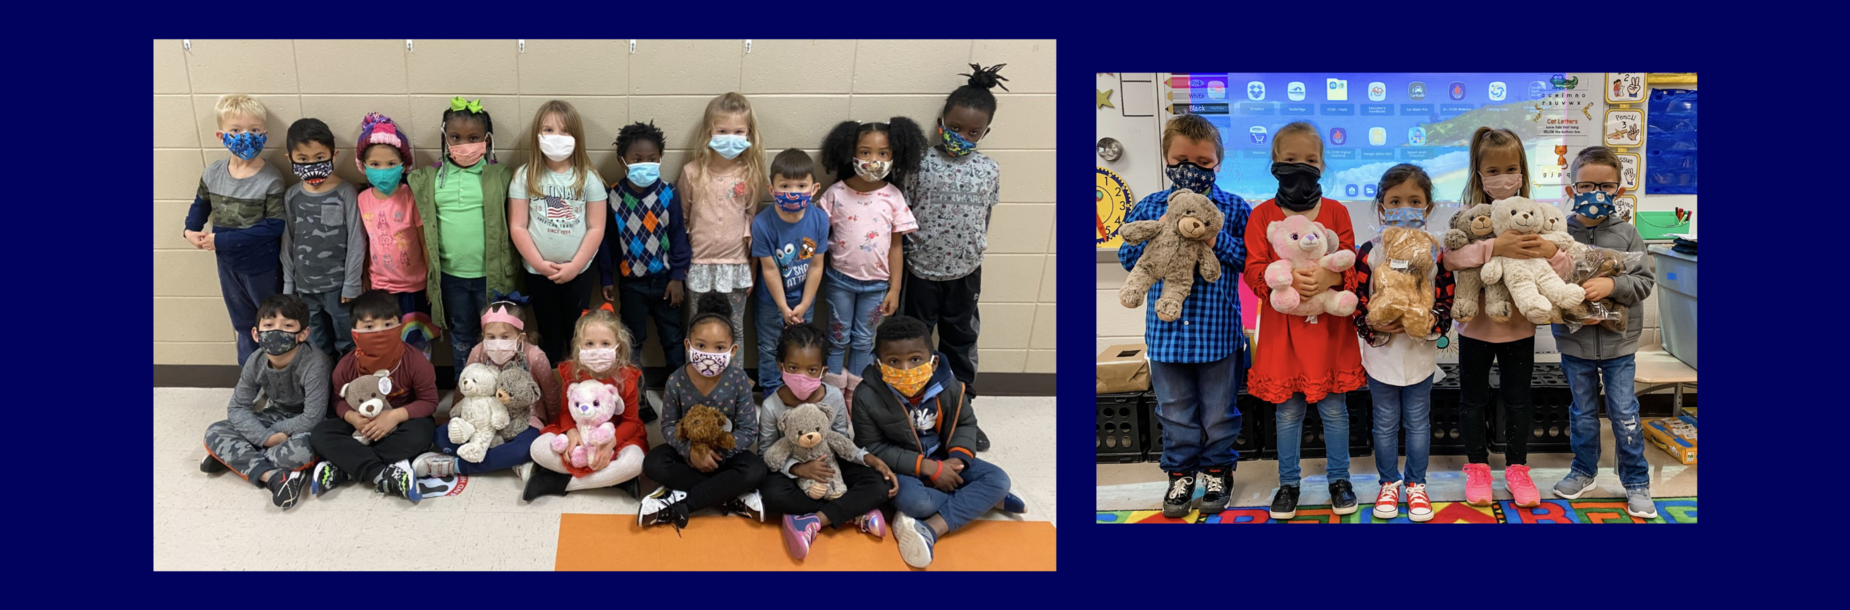 students holding teddy bears smiling